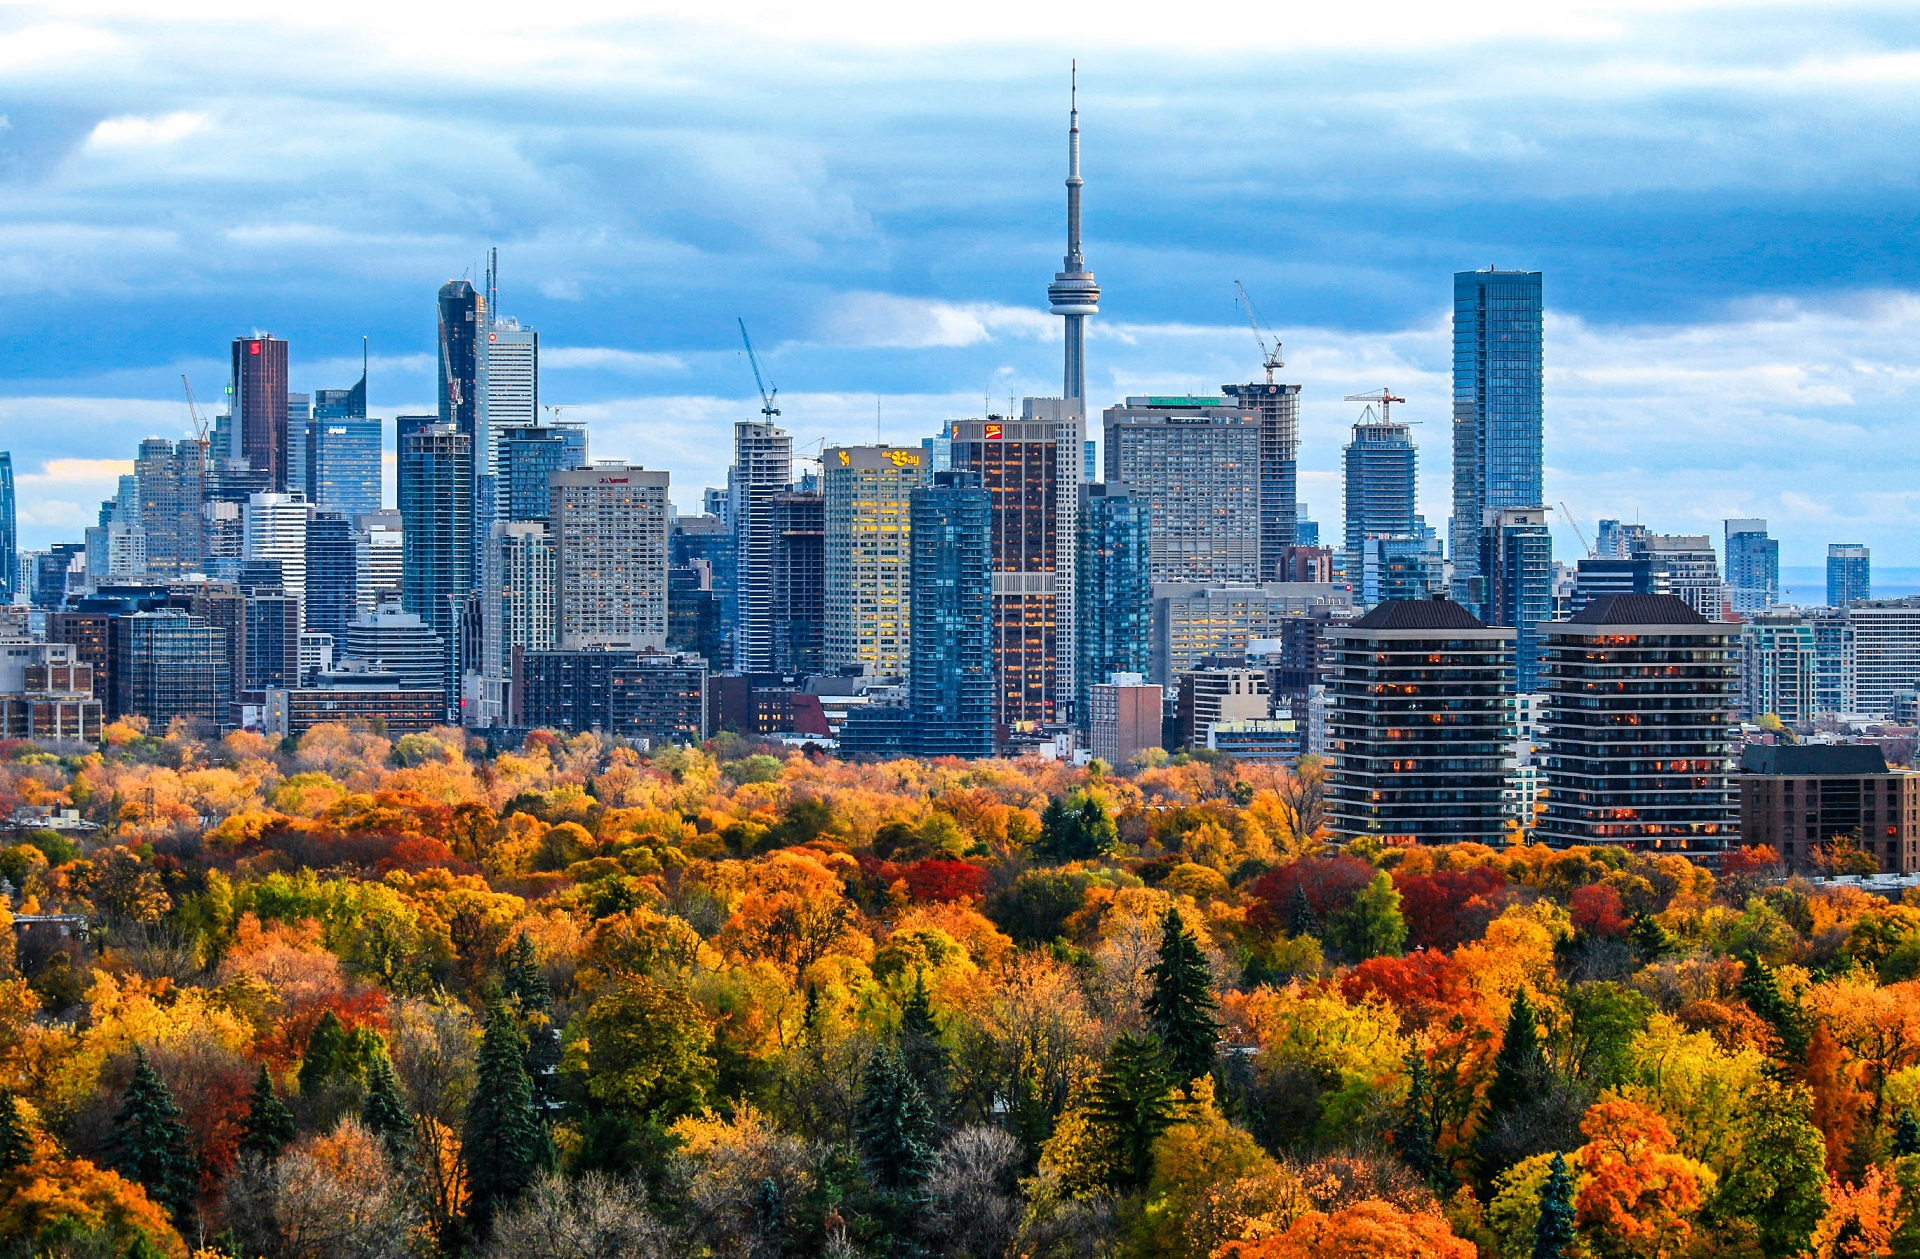 Toronto downtown and midtown with fall colors of trees in foreground